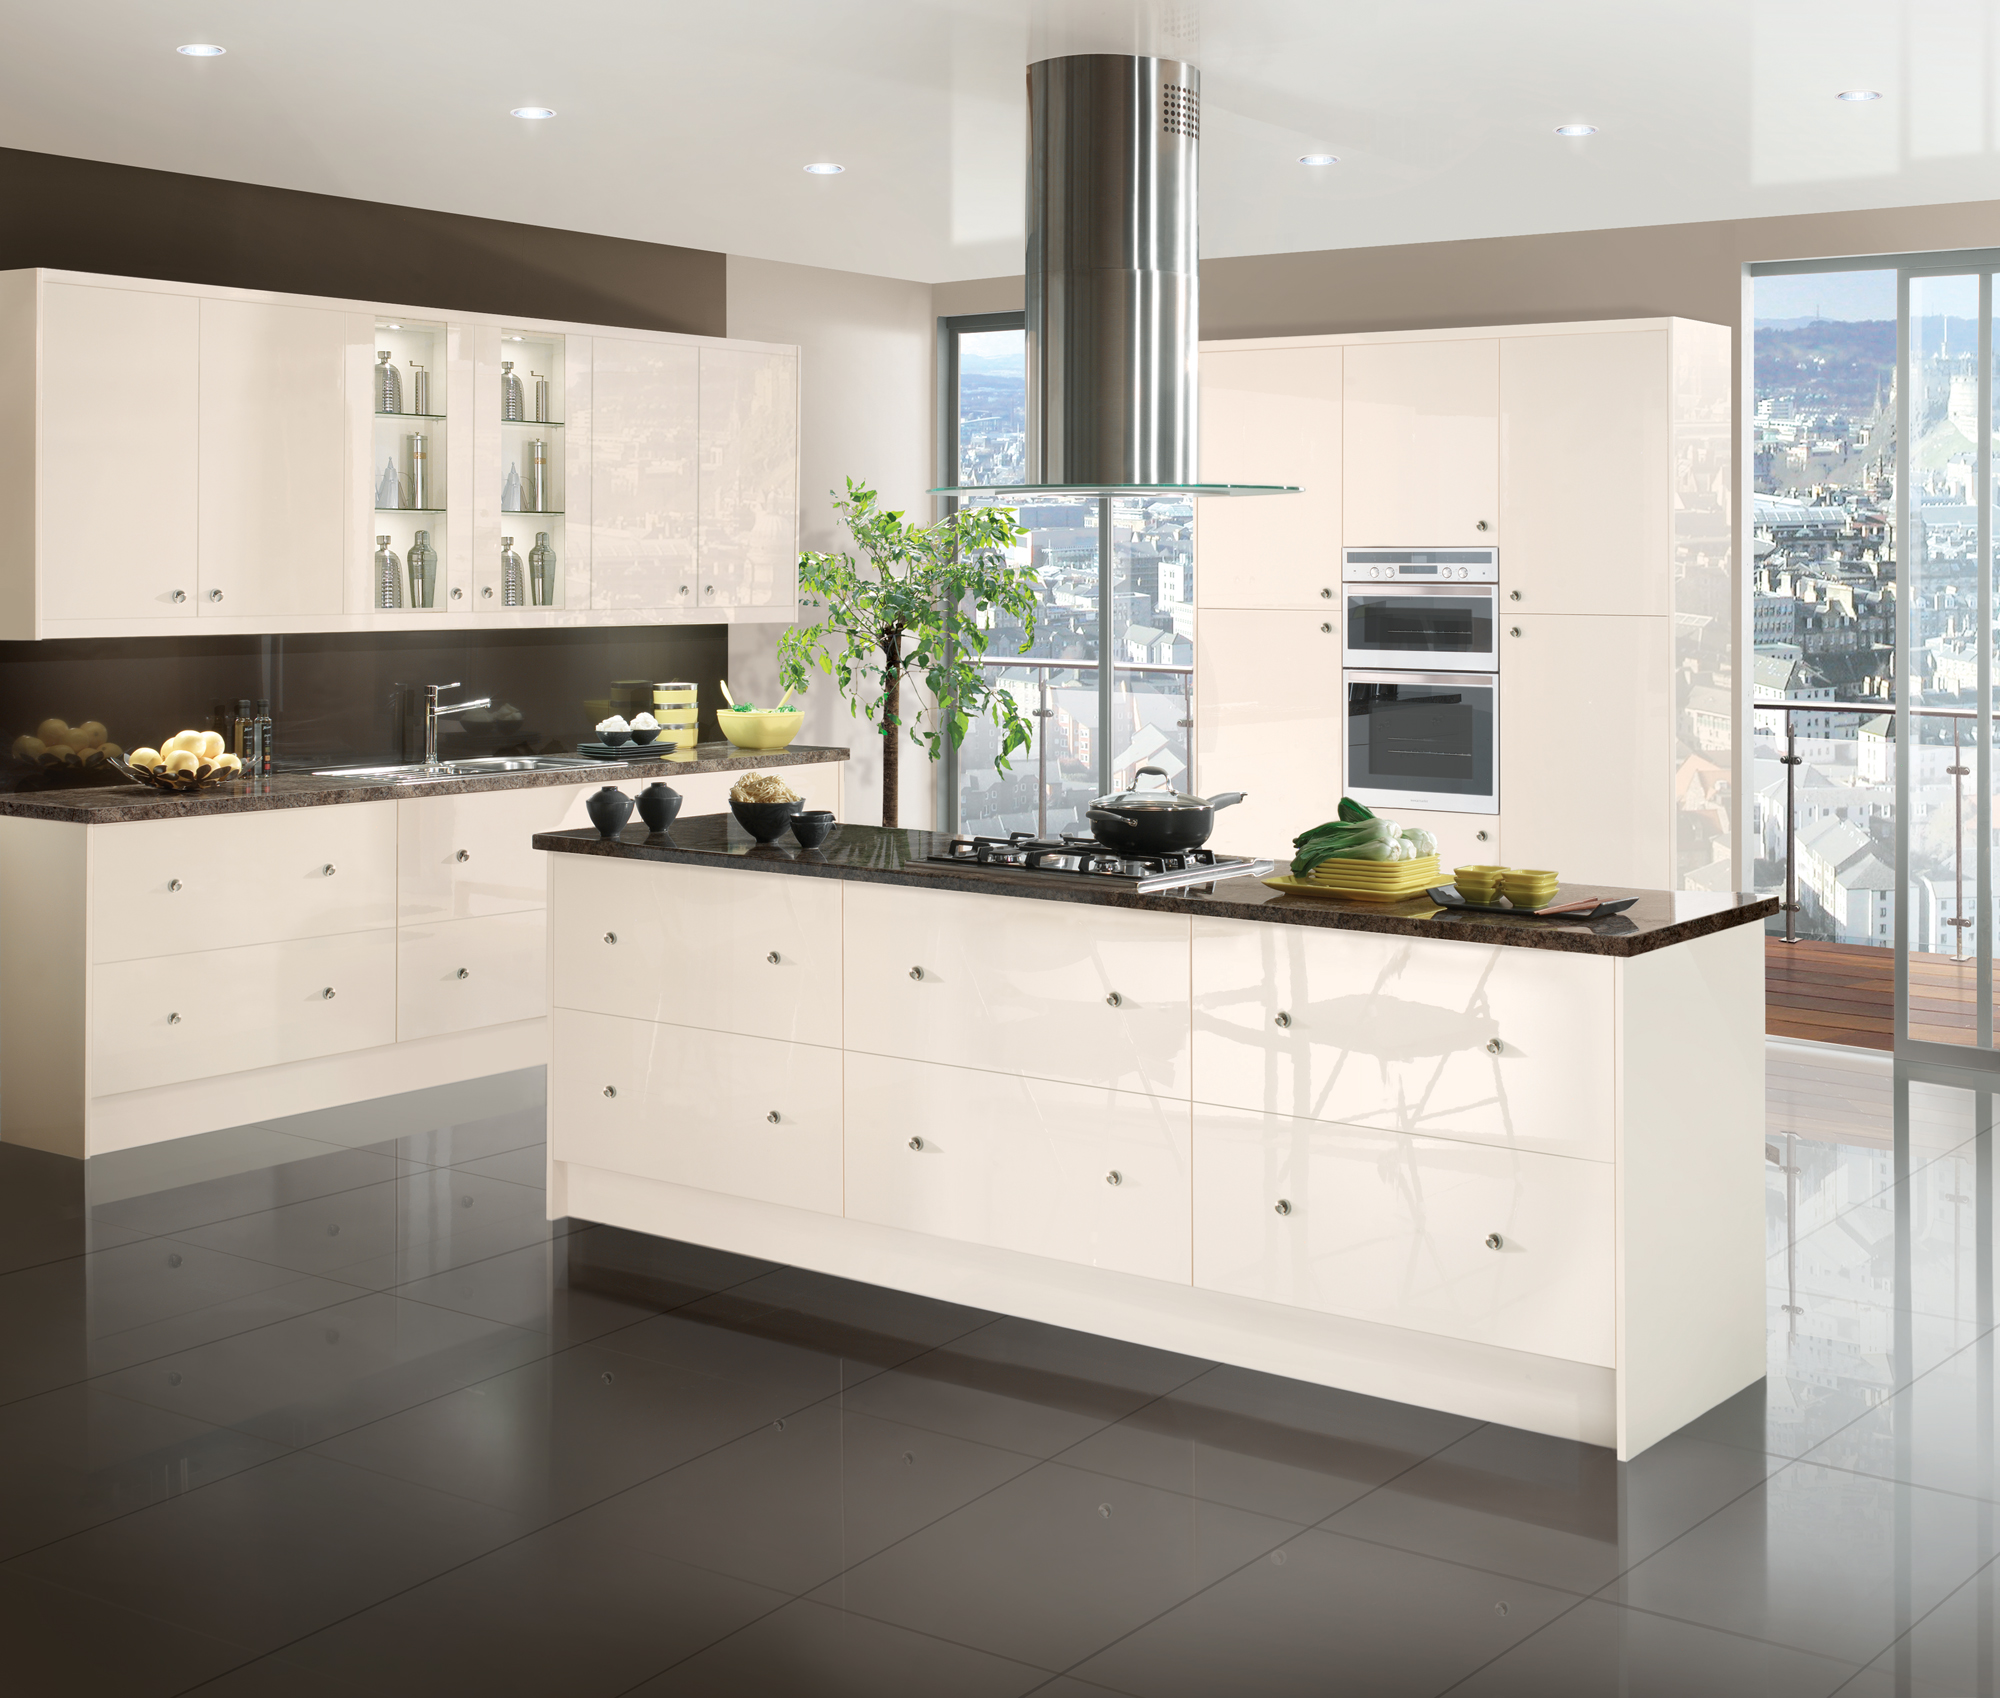 kitchen design nuneaton welcome to installations nuneaton kitchens bedrooms 708